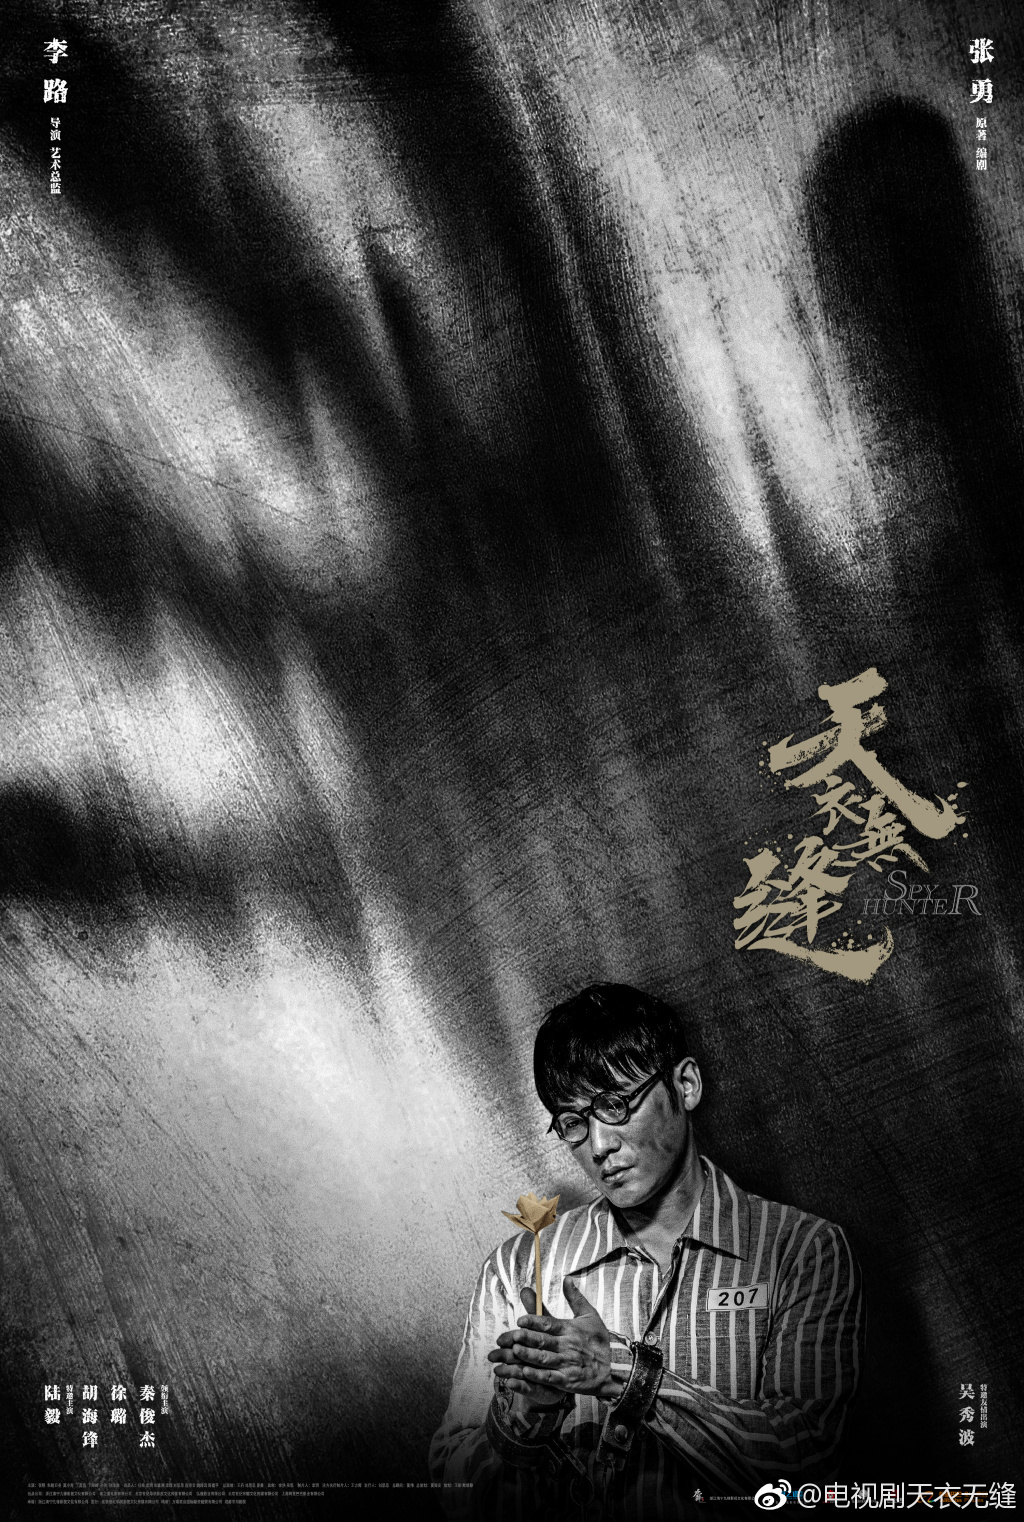 Poster Spy Hunter Lu Yi